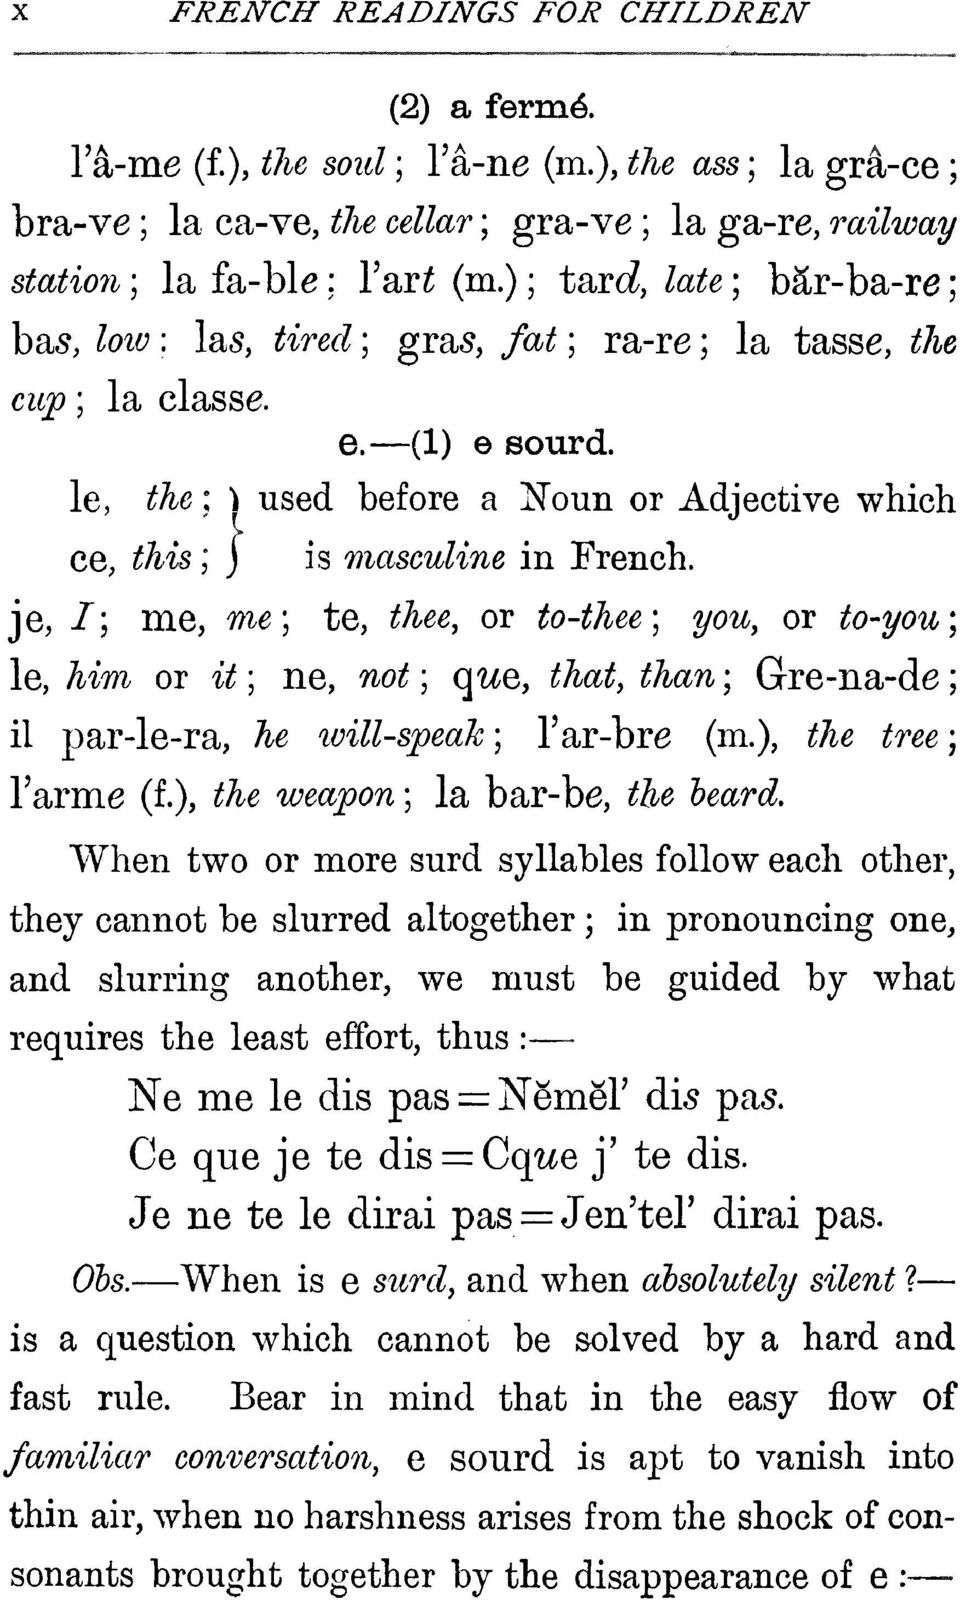 le, the : } used before a Noun or Adjectivewhich ce, #A-is ; j is masculine in French, je,/; me, me; te, te, or to-thee; you, or to-you\ le,^im or ^ ; ne, ^o^ ; que, that, than ; Gre-na-de ; il